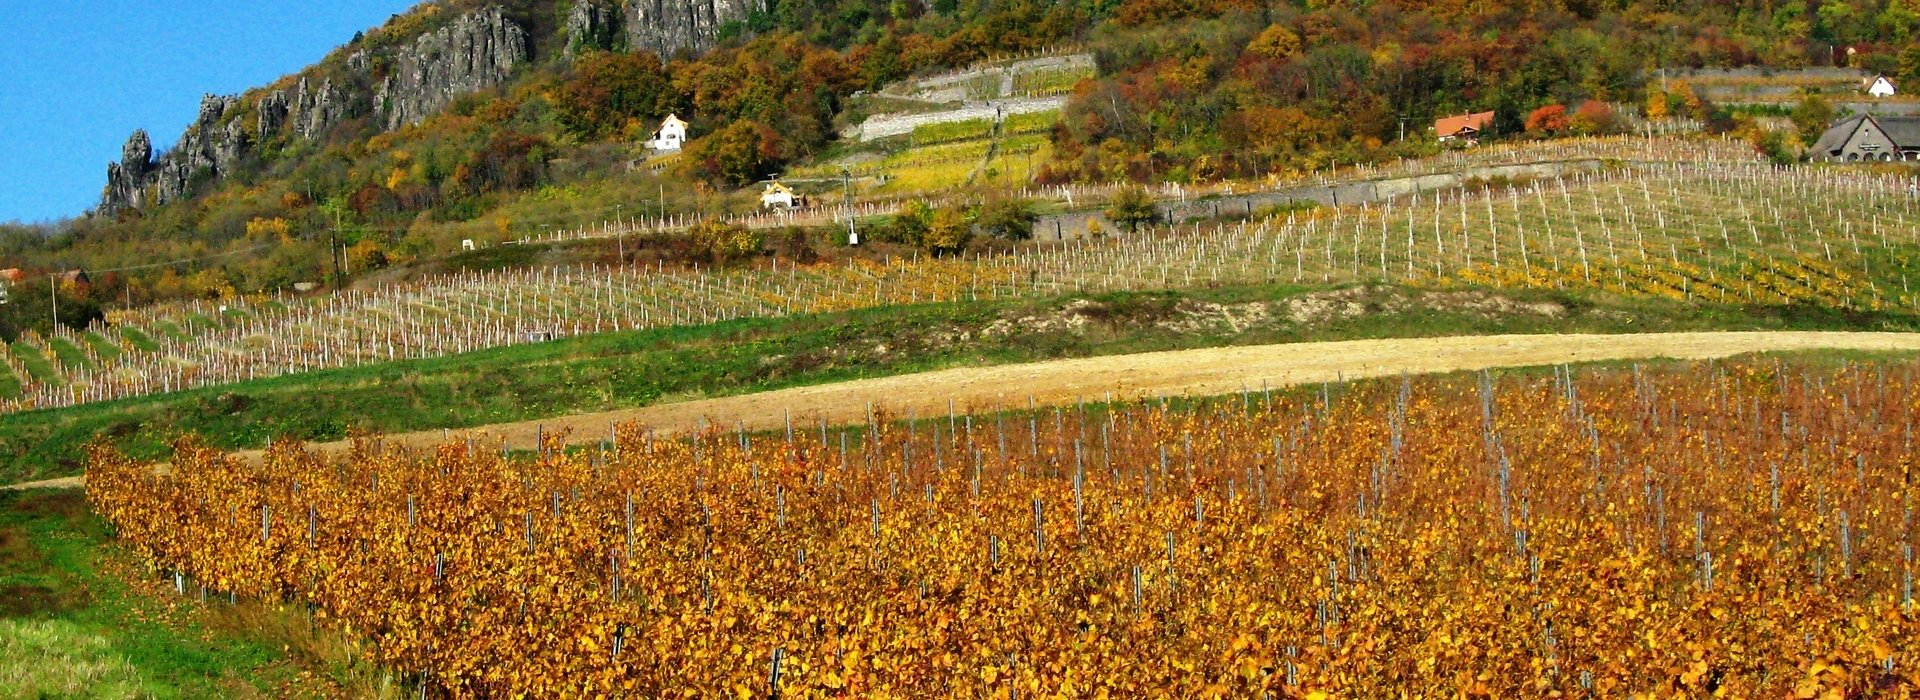 Bükkalja Wineregion